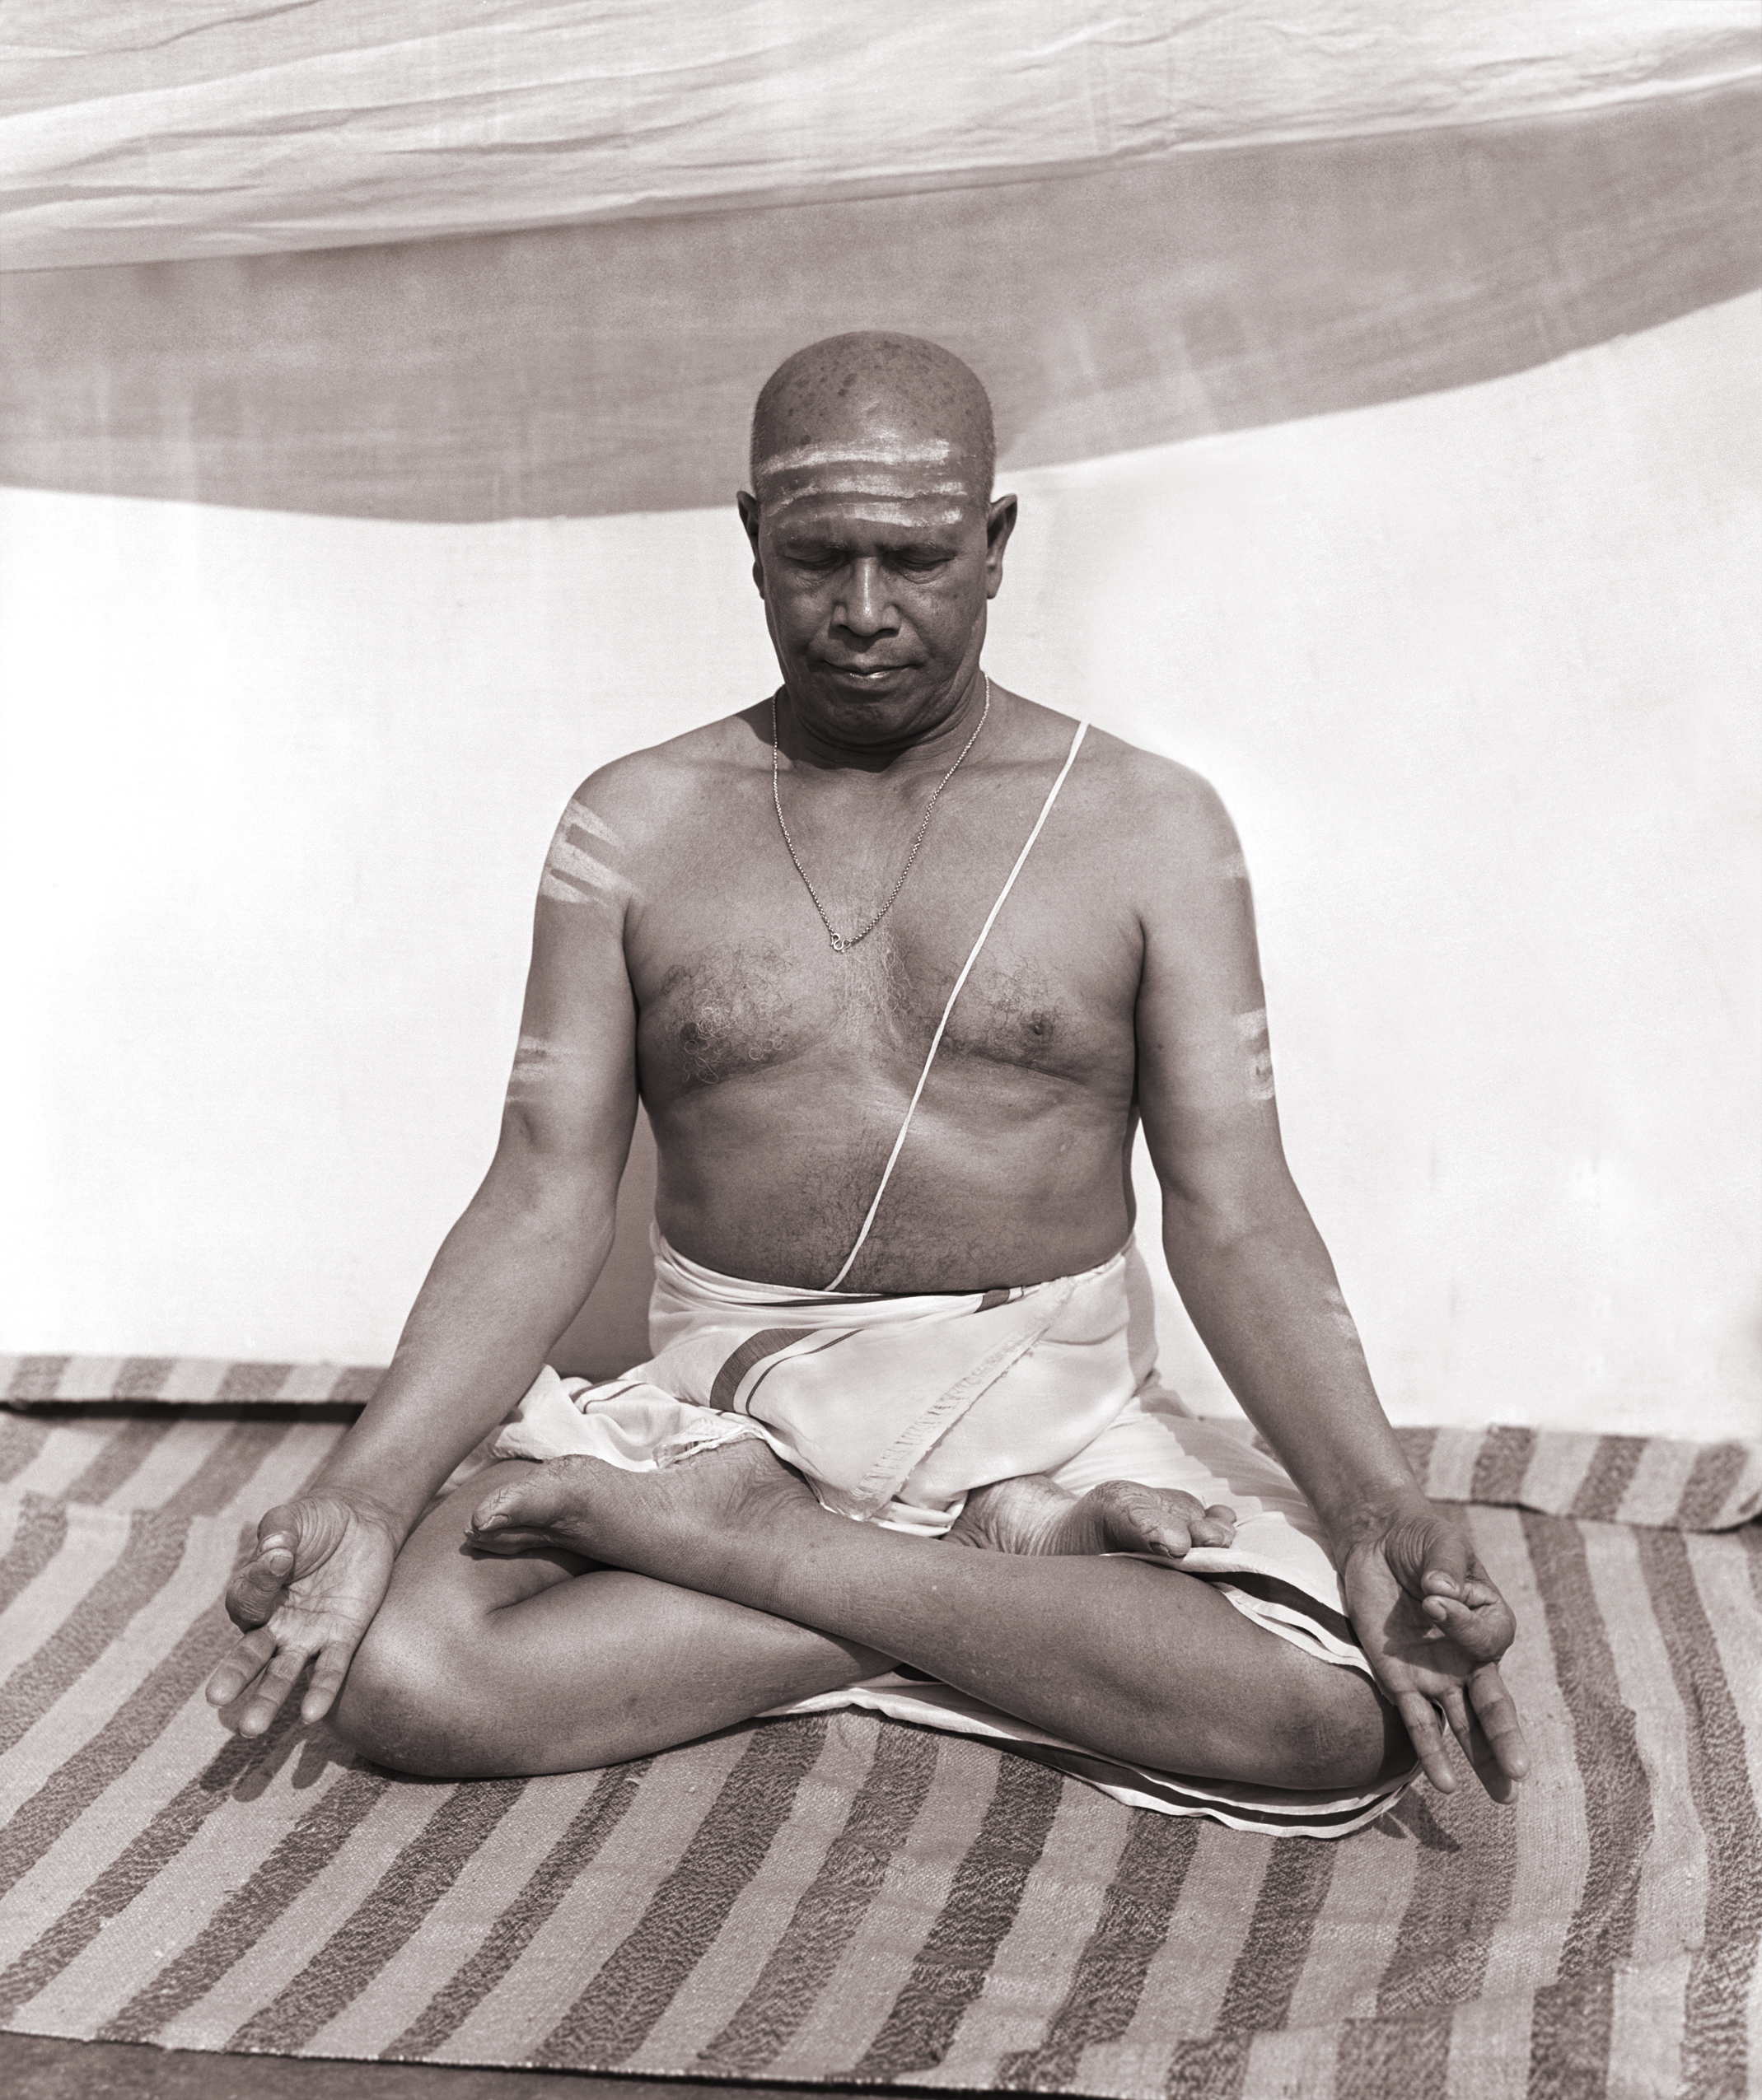 Pattabhi Jois sitting in meditation